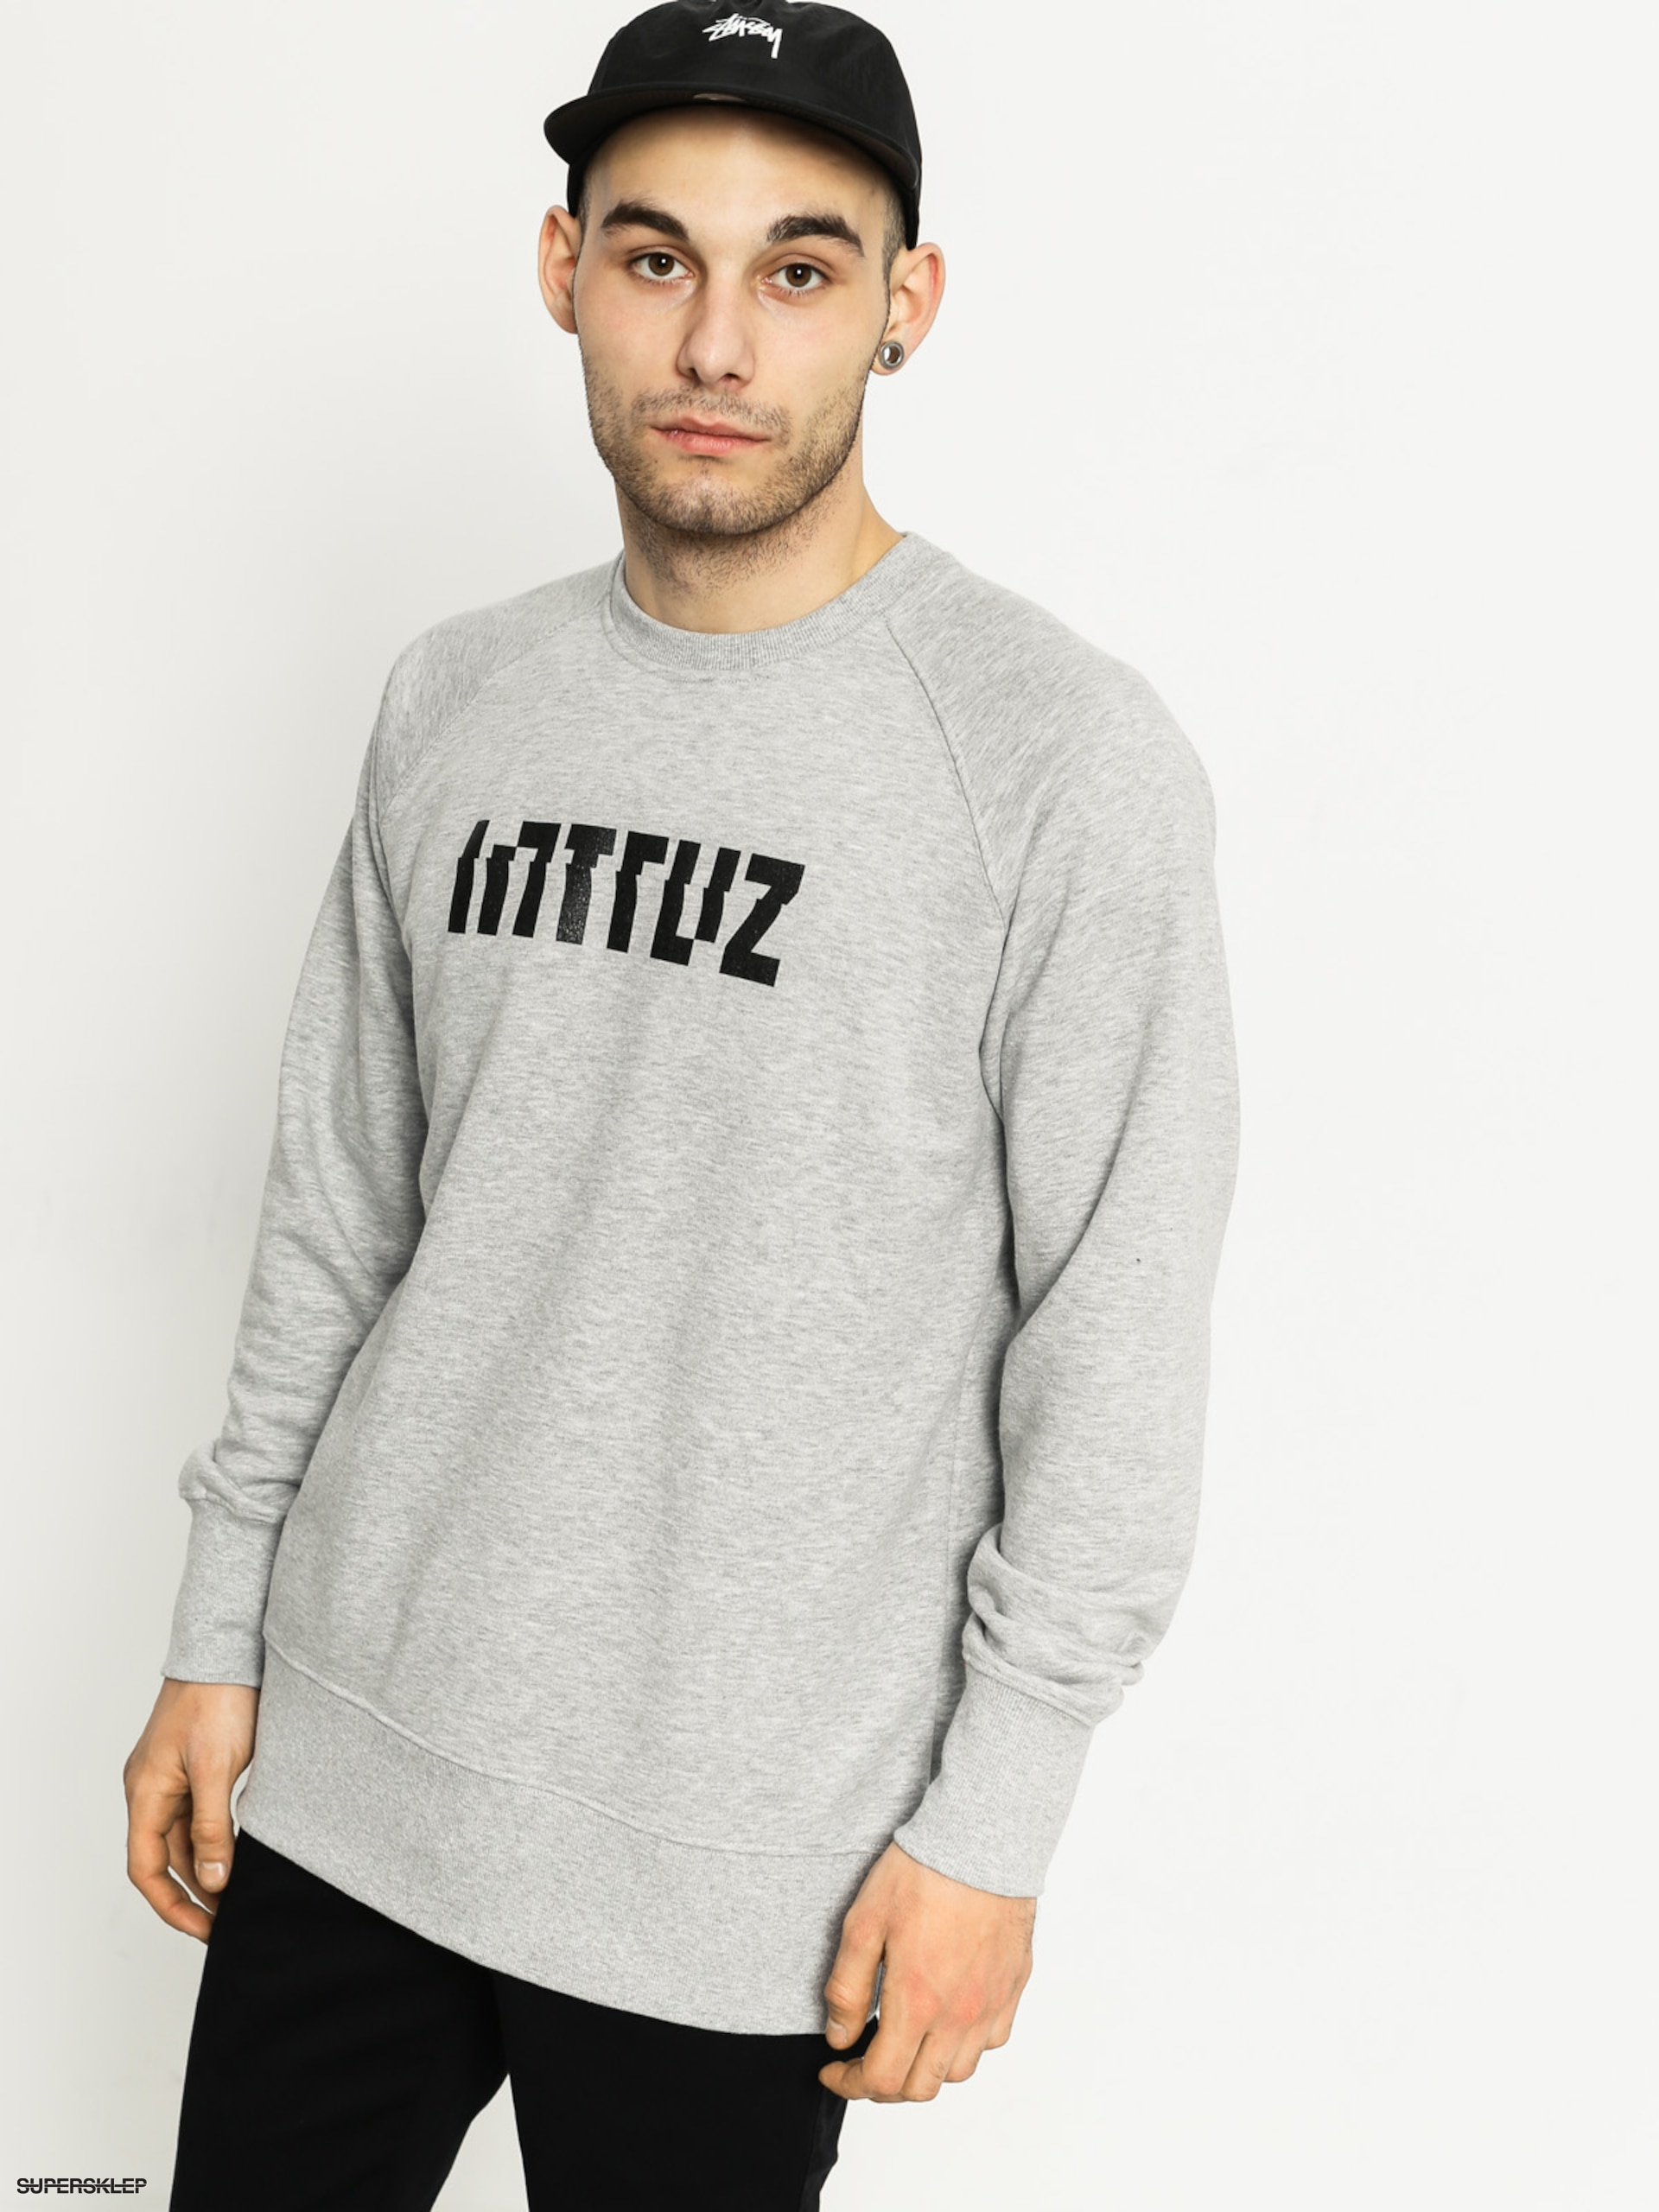 Mikina Intruz Logo (grey heather)